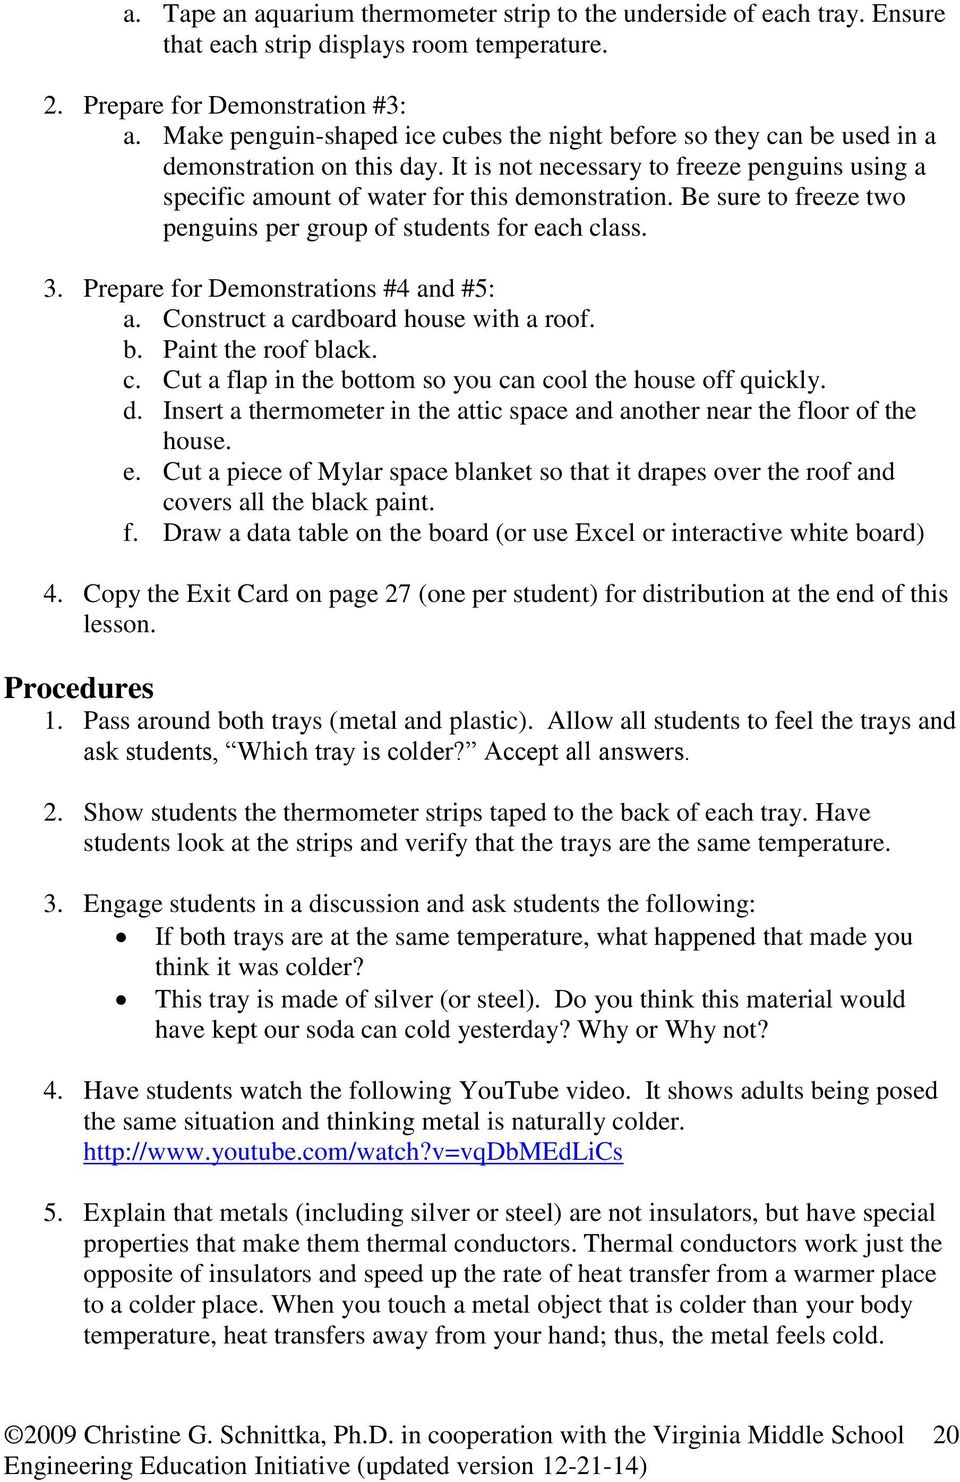 Thermal Energy Temperature And Heat Worksheet Lesson 1 Answer Key